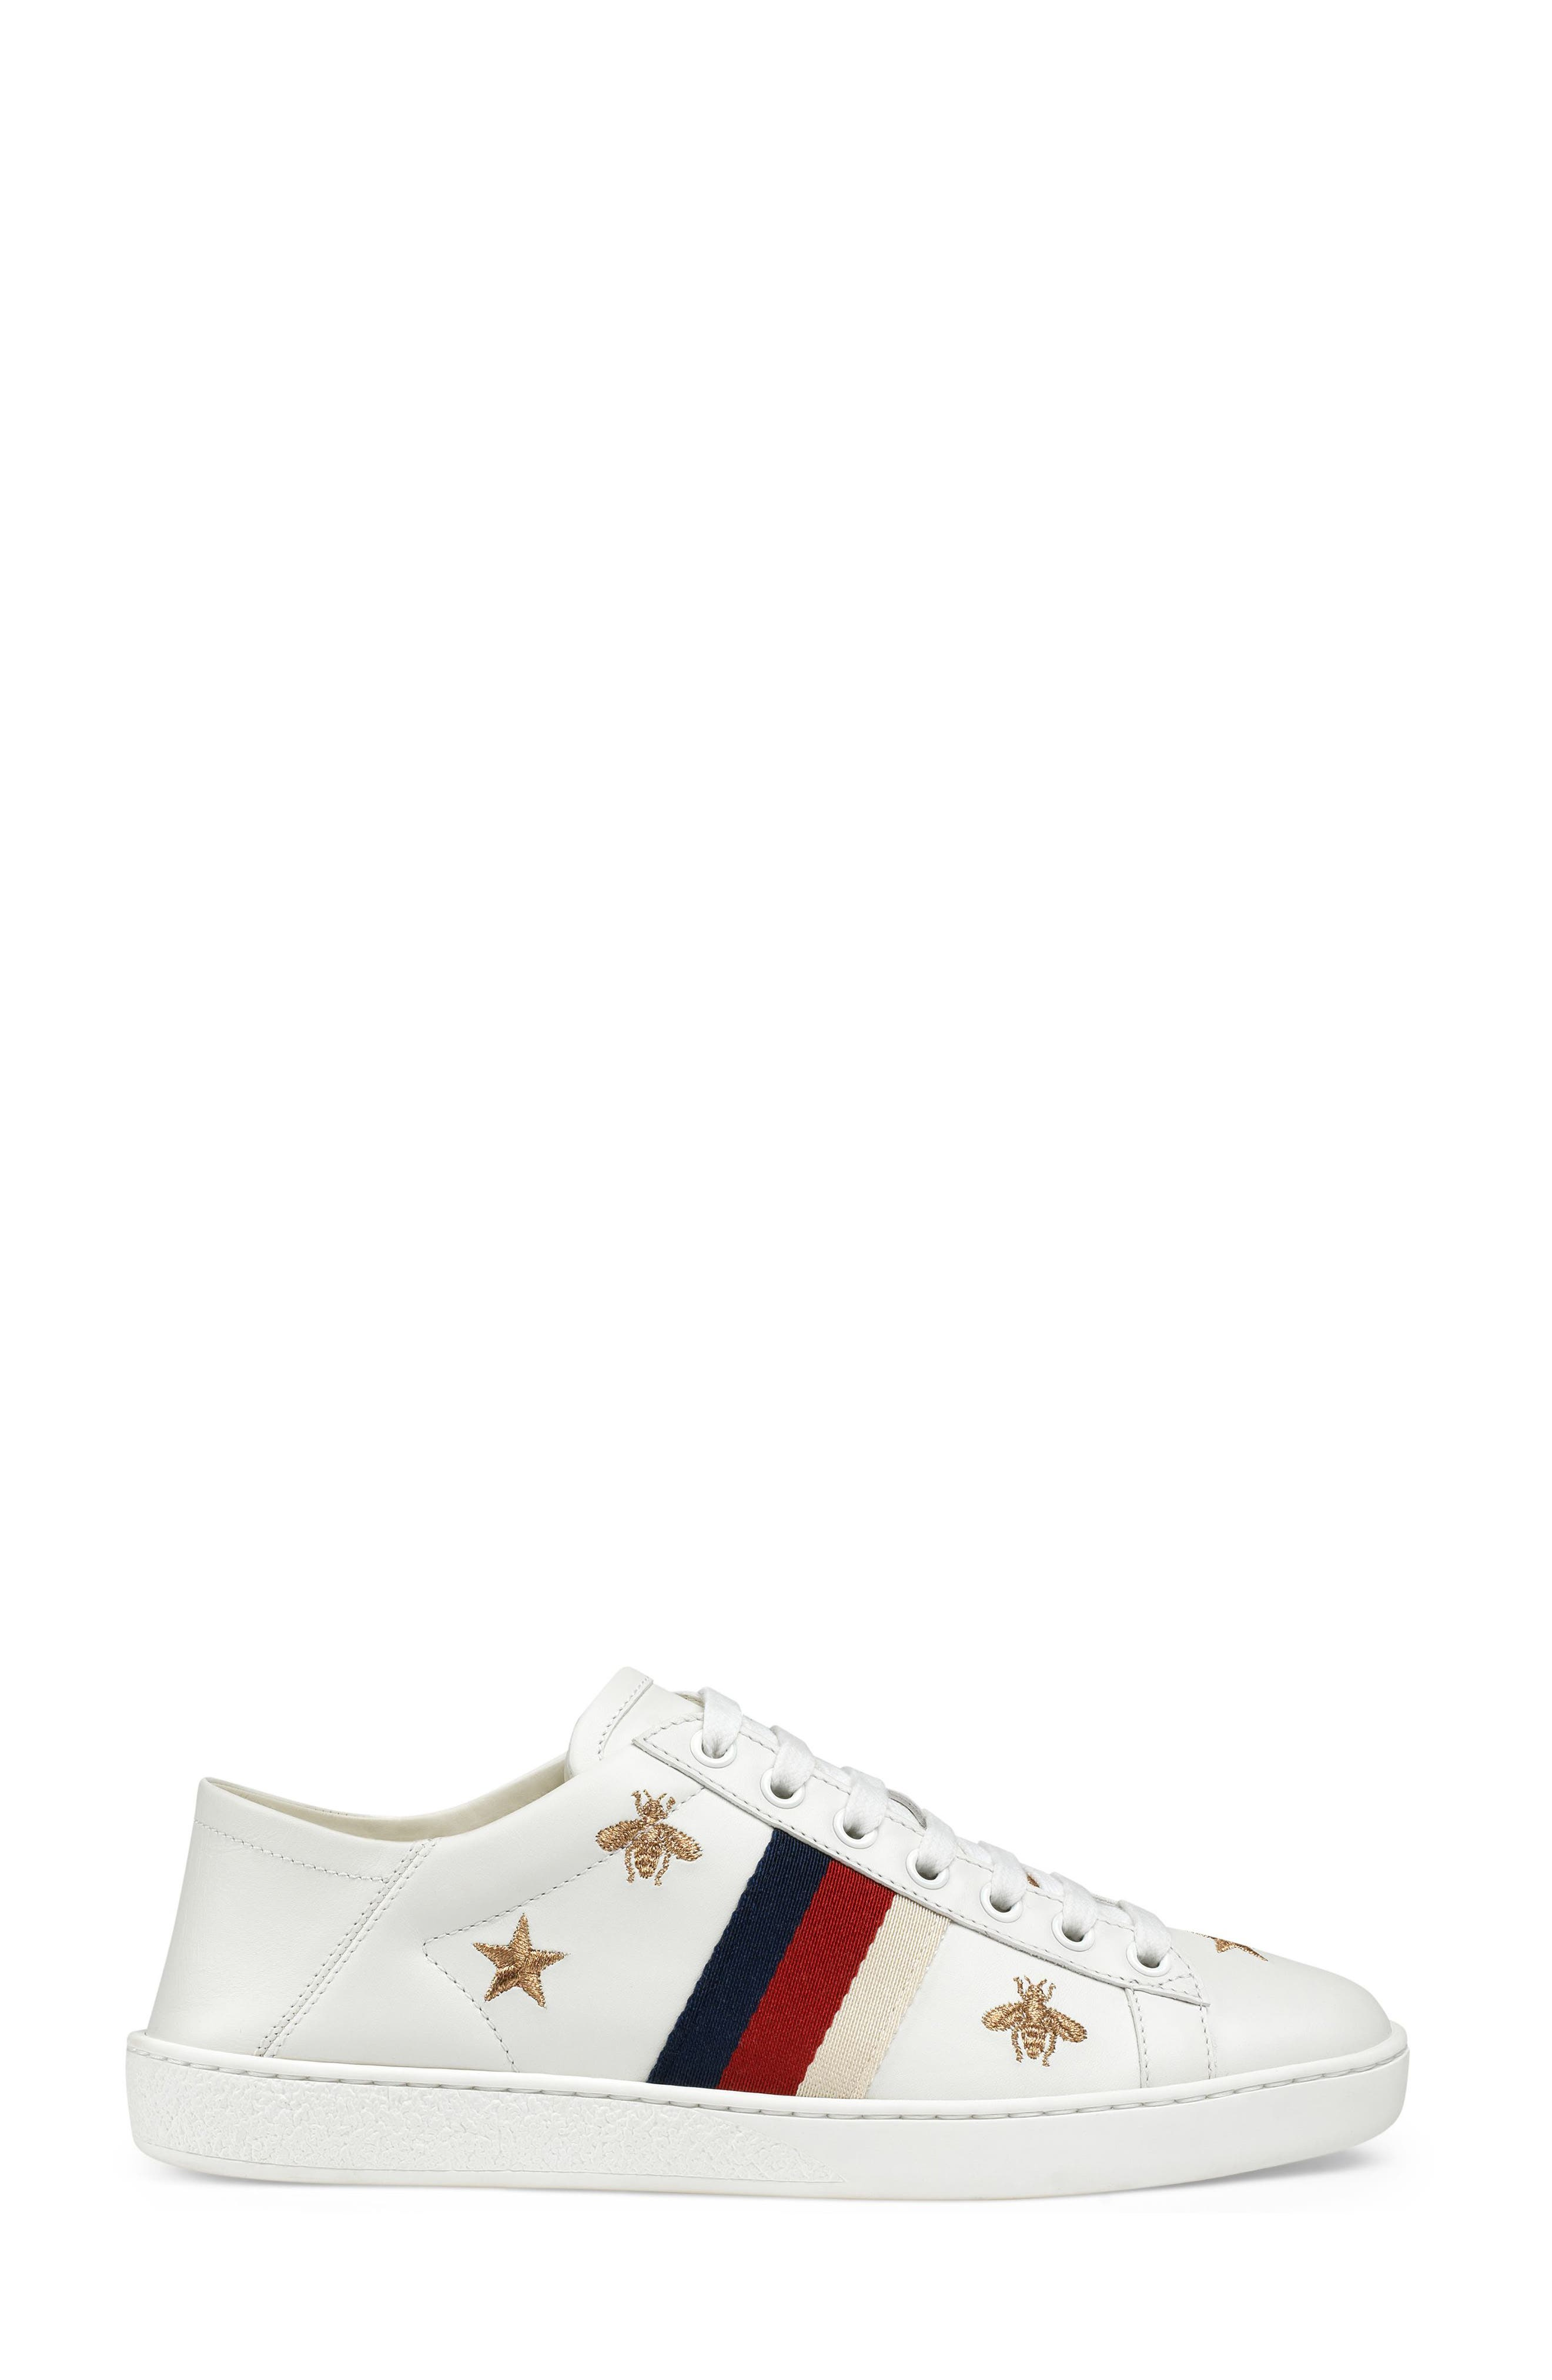 GUCCI, New Ace Convertible Heel Sneaker, Main thumbnail 1, color, WHITE/ BEE PRINT